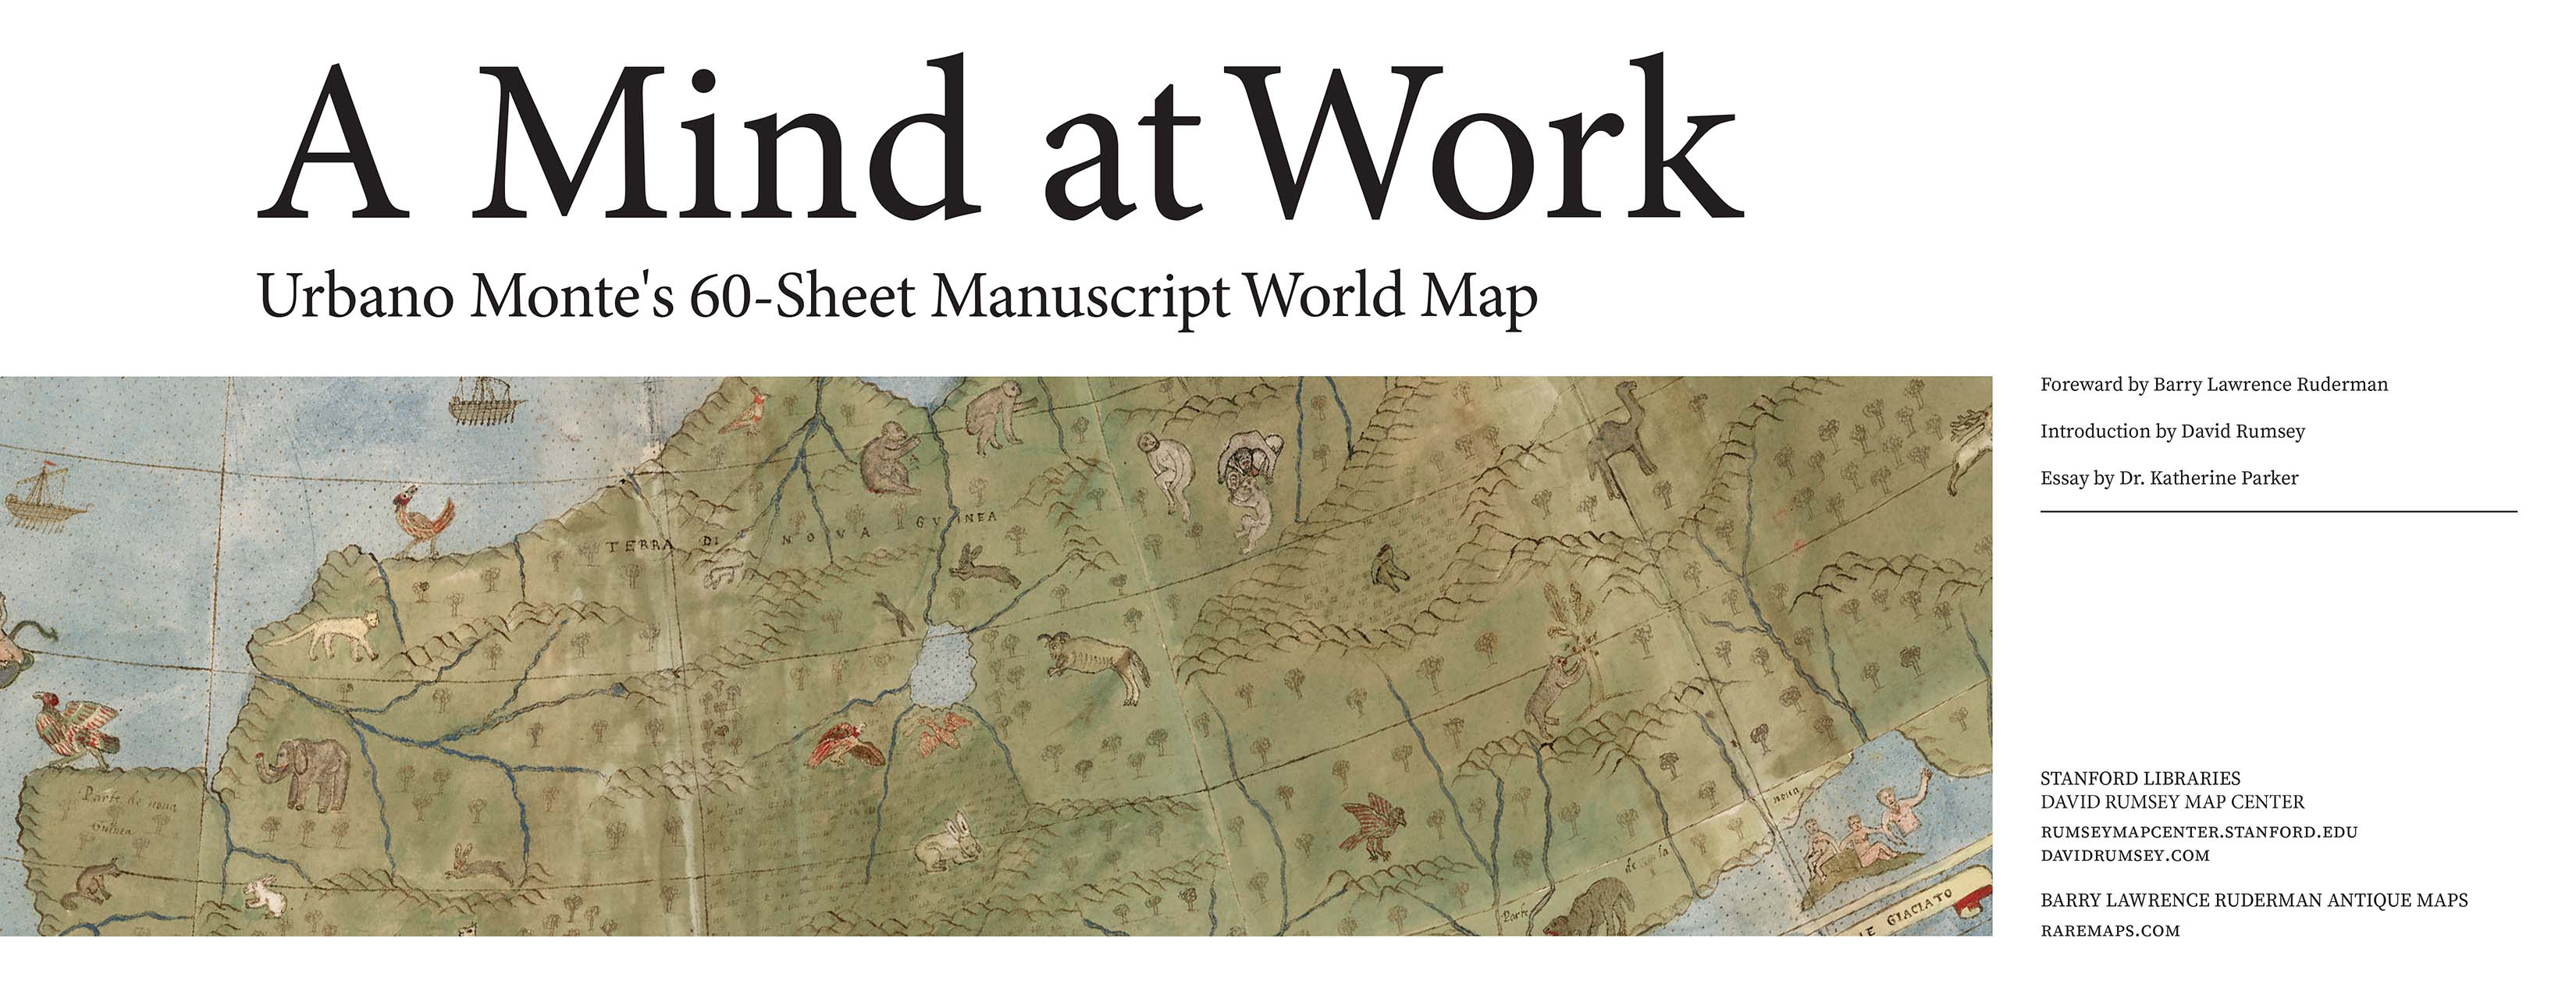 David rumsey historical map collection largest early world map read pdf a mind at work urbano montes 60 sheet manuscript world map forward by barry lawrence ruderman introduction by david rumsey gumiabroncs